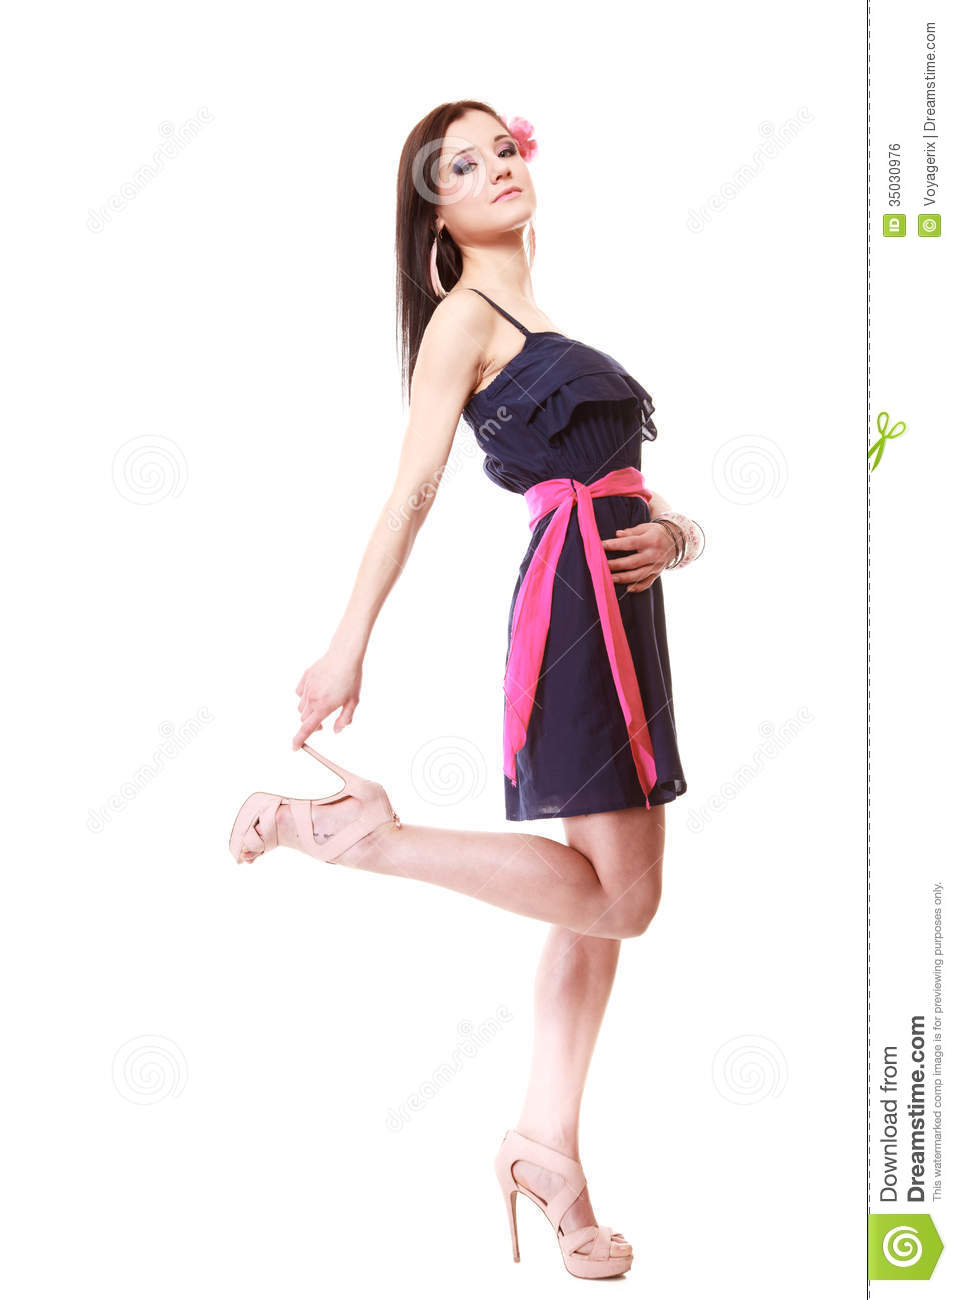 More Similar Stock Images Of Fashion Model Posing In The